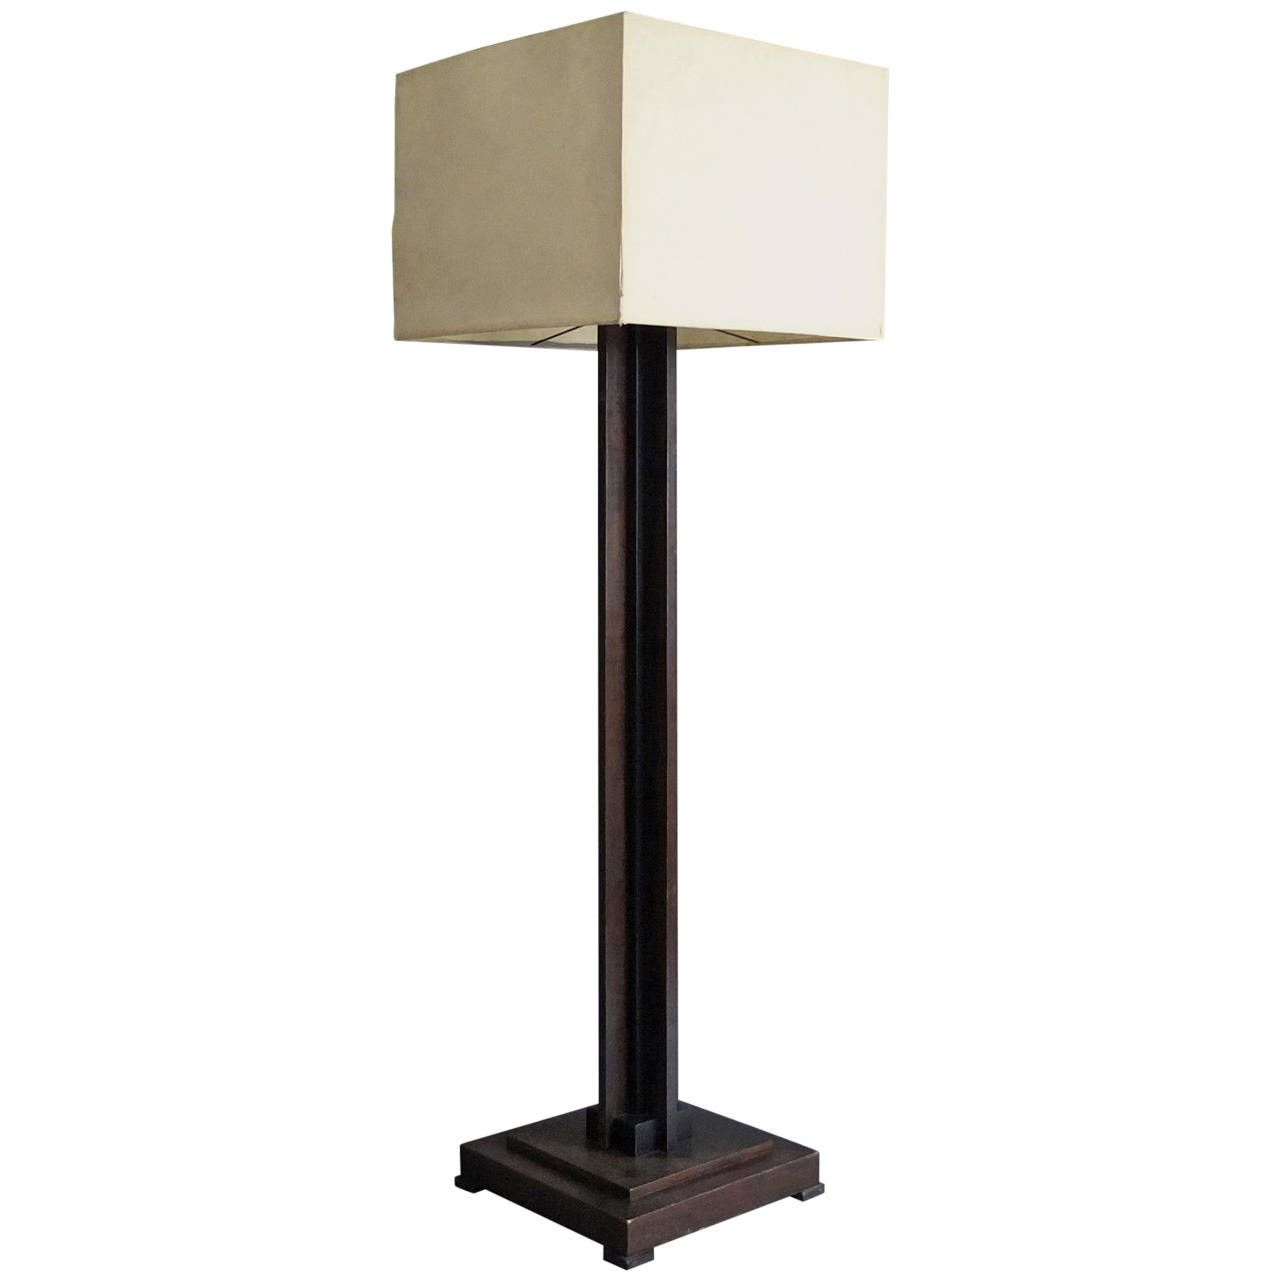 Antique floor lamp with table - Fine French Art Deco Wooden Base Square Floor Lamp